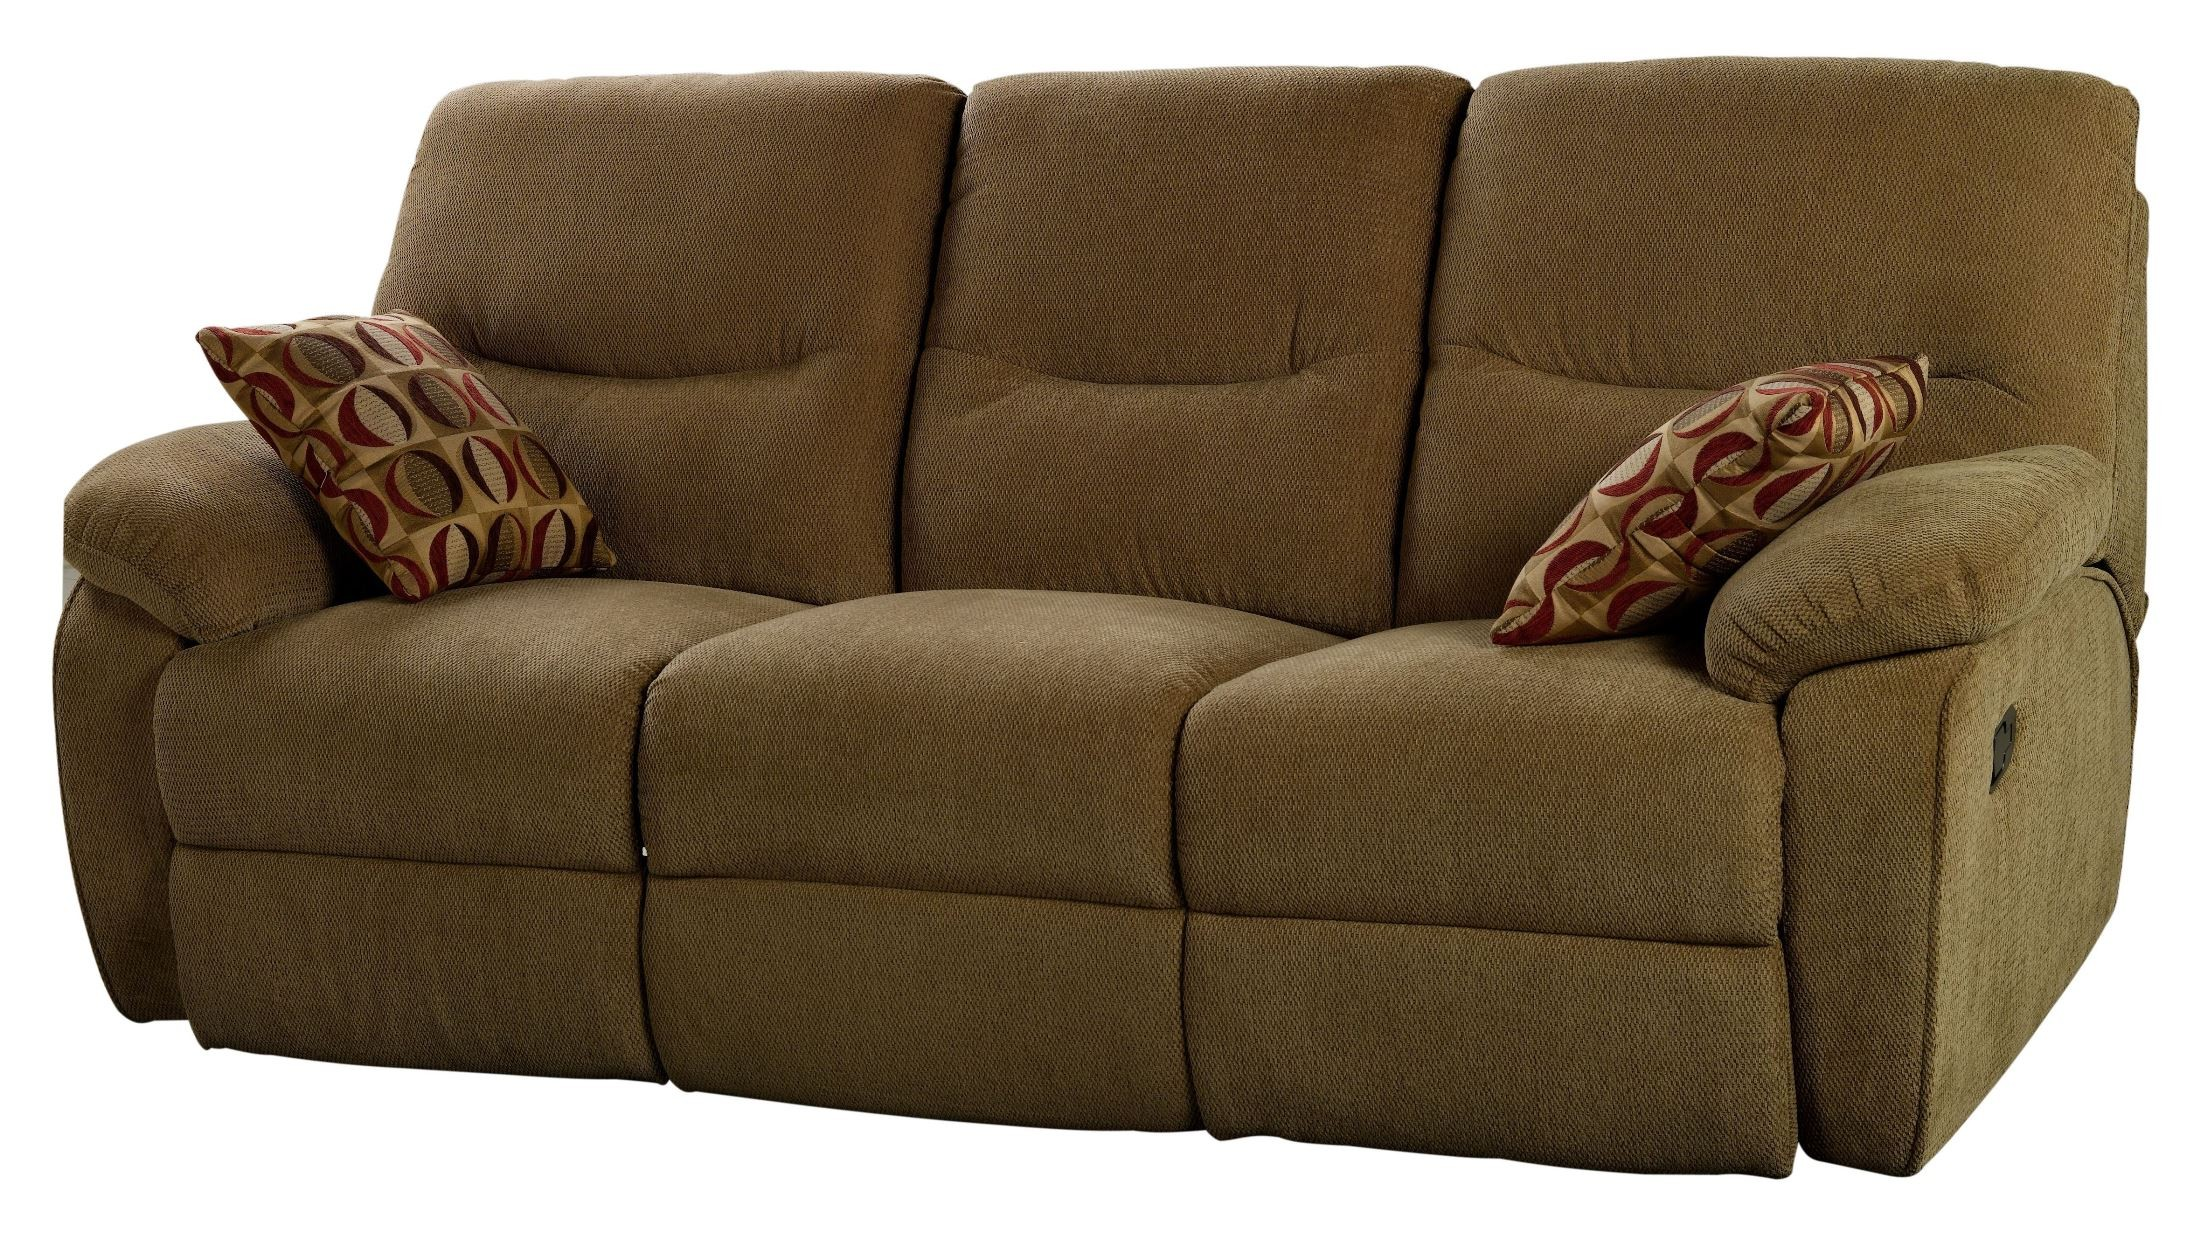 Manchester Cocoa Dual Reclining Sofa From New Classics 20